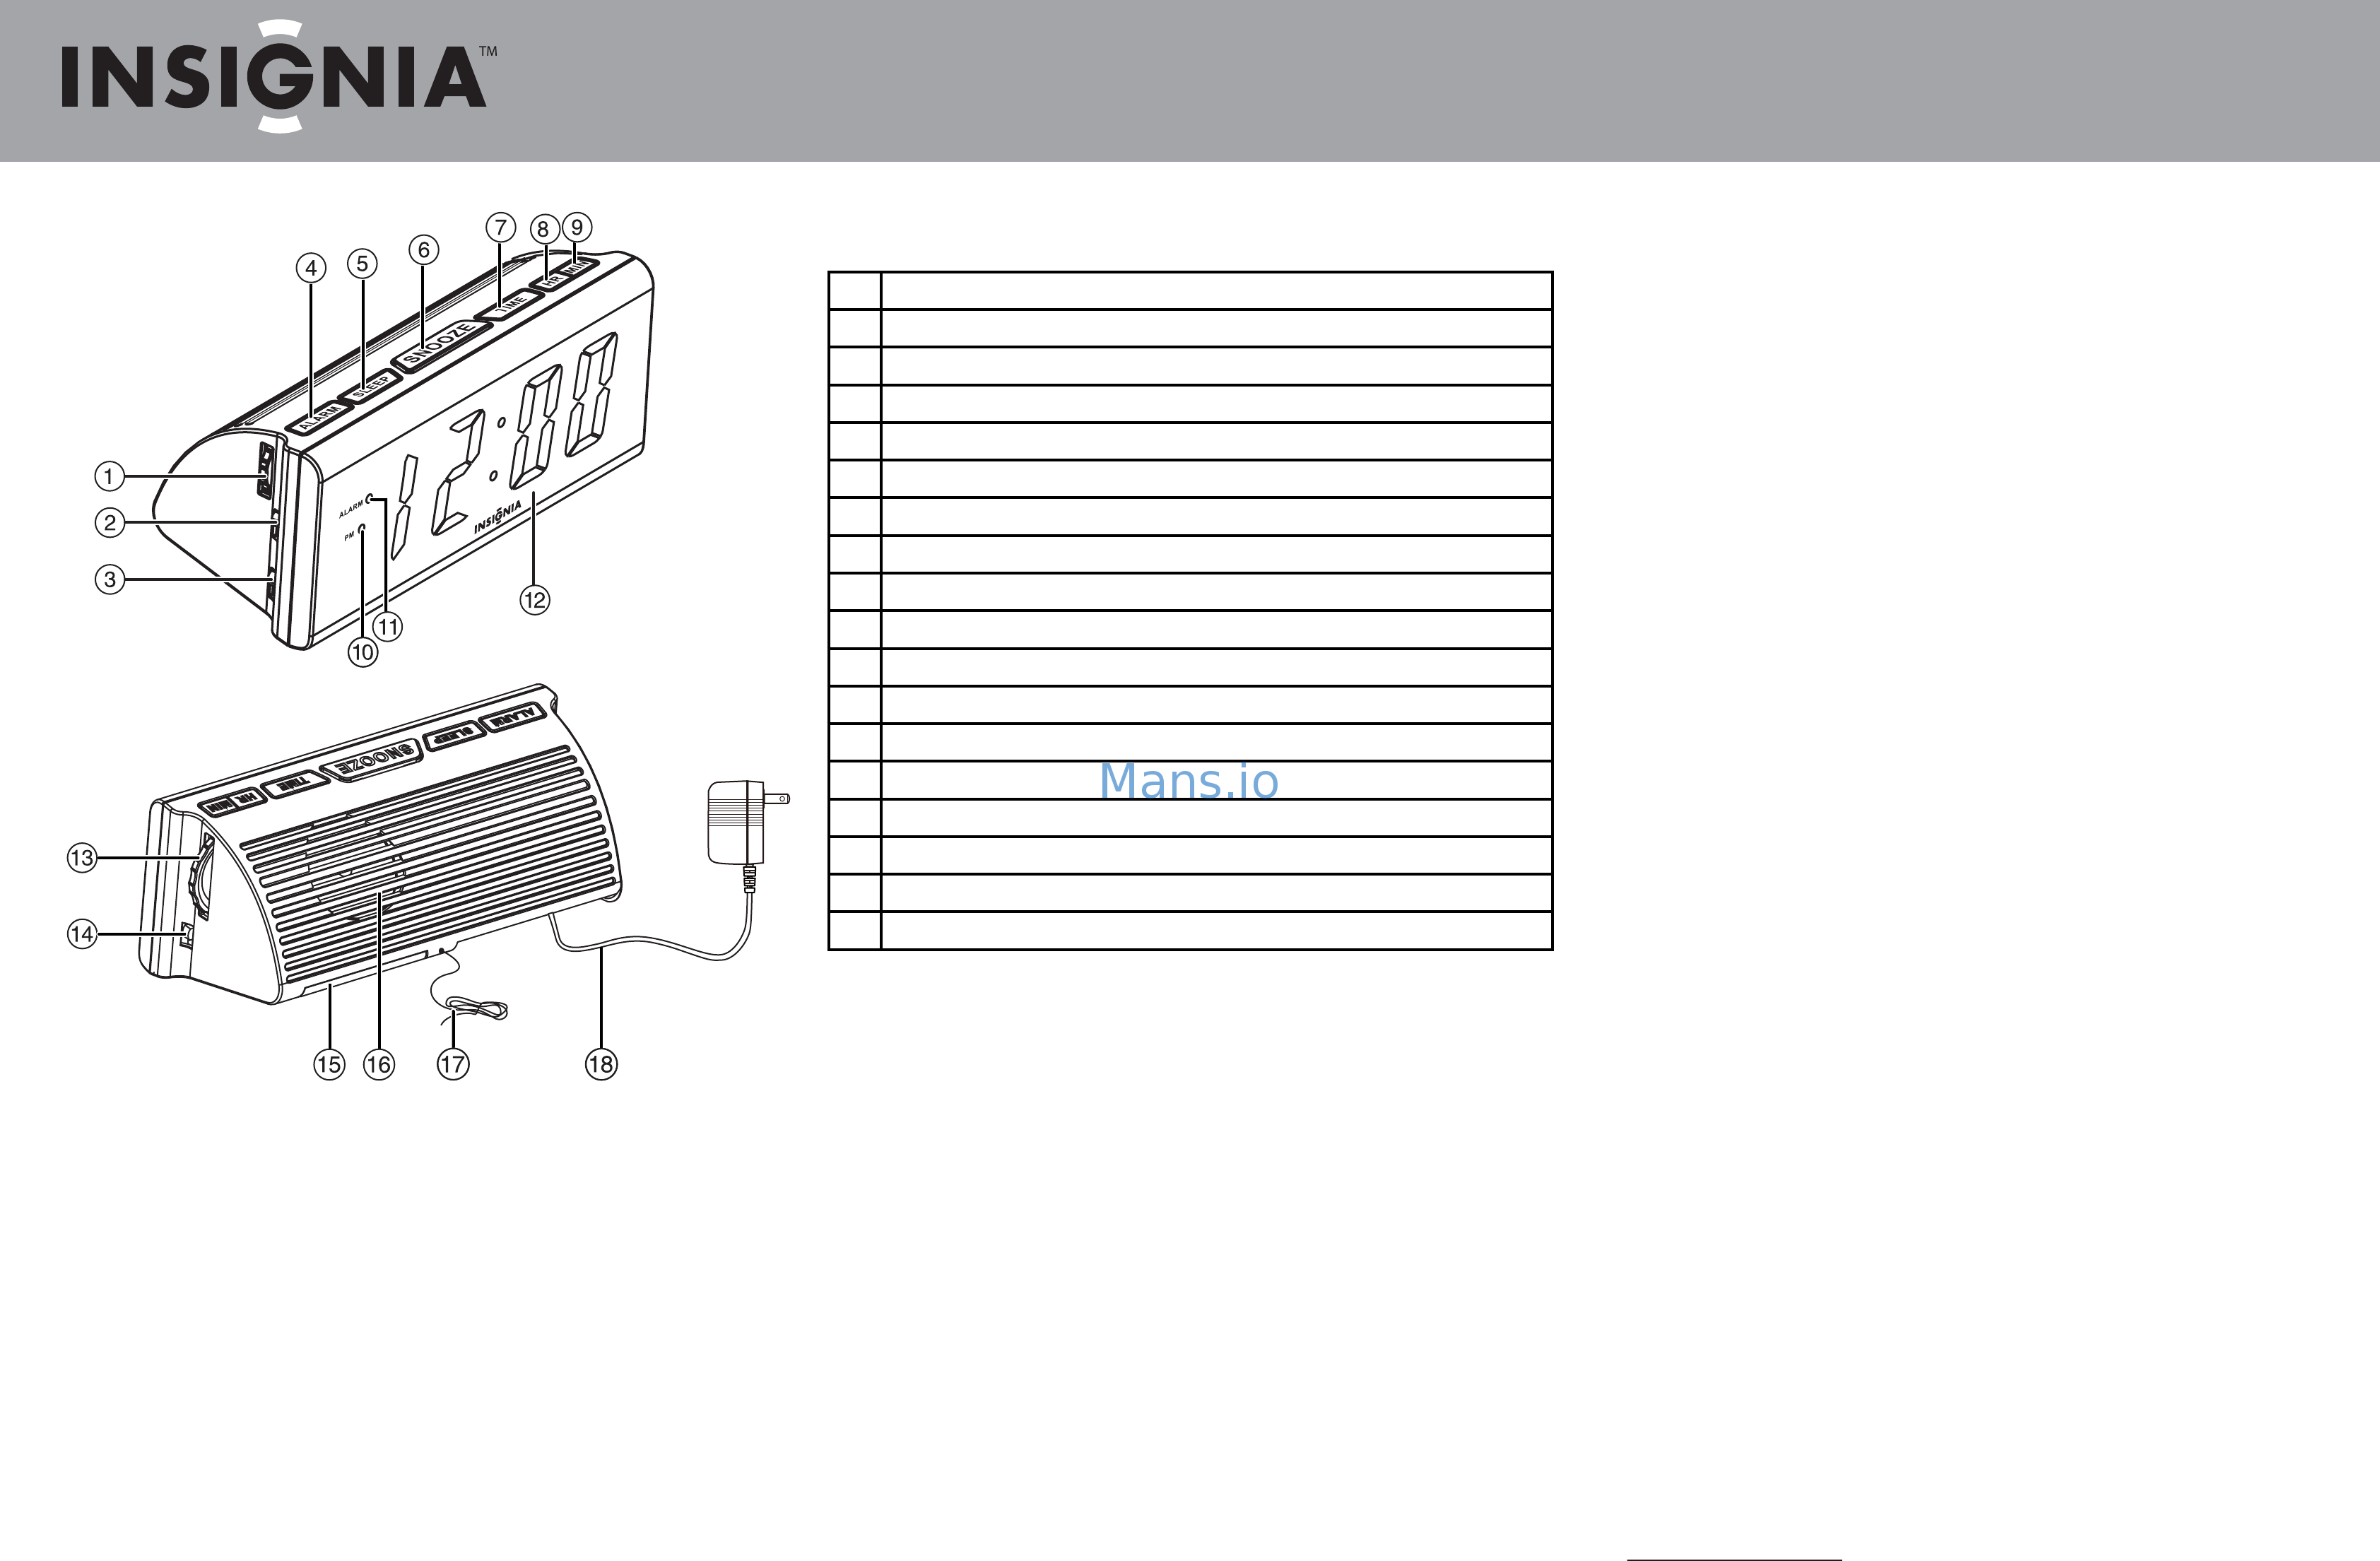 Insignia NS-CL1111 Quick Setup Guide Page: 1